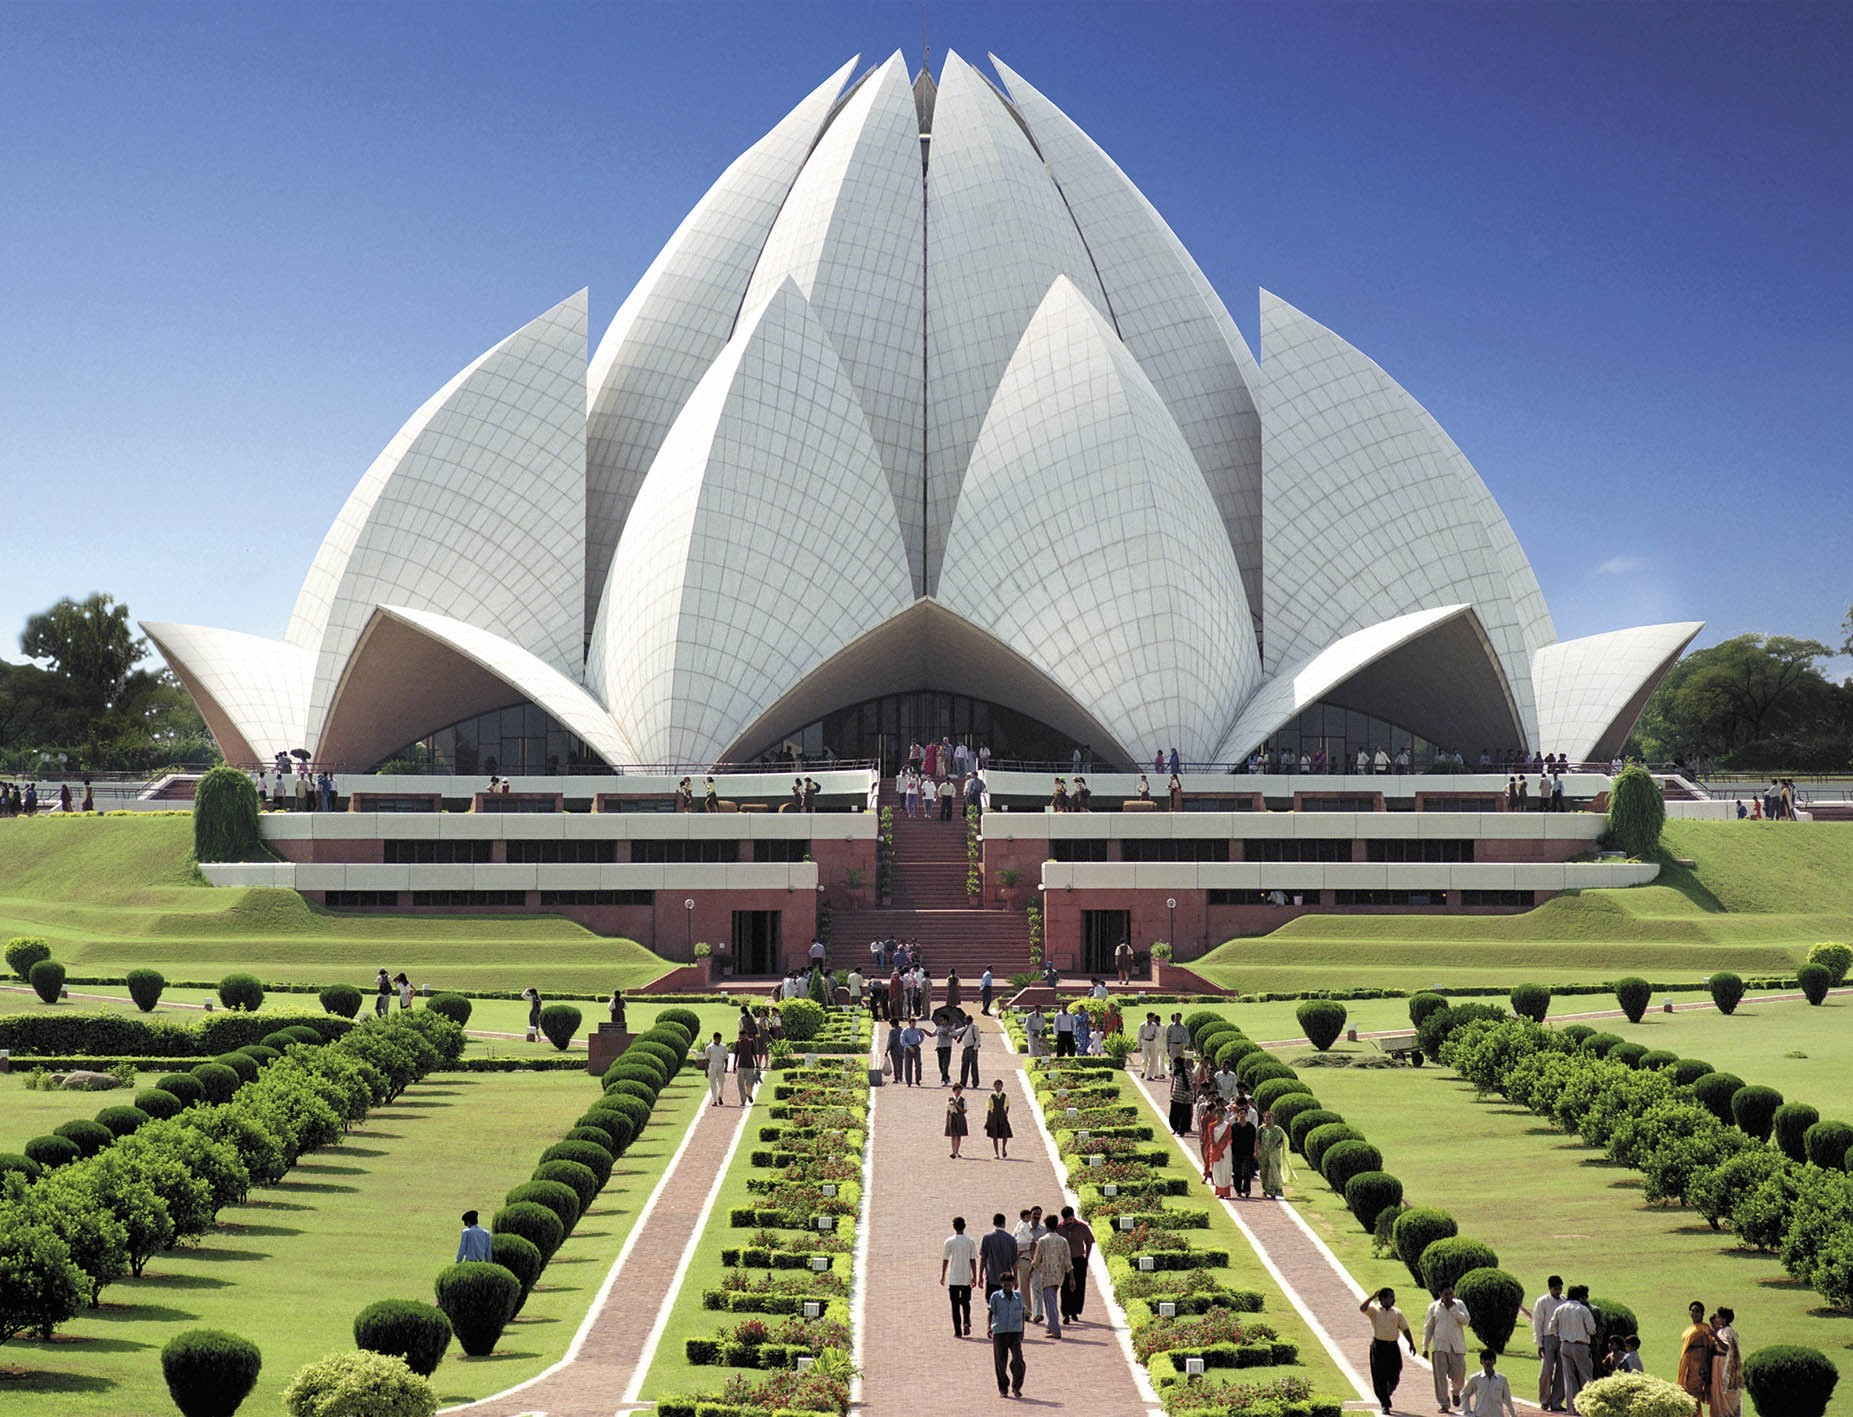 lotus temple delhi questions and answers discussion